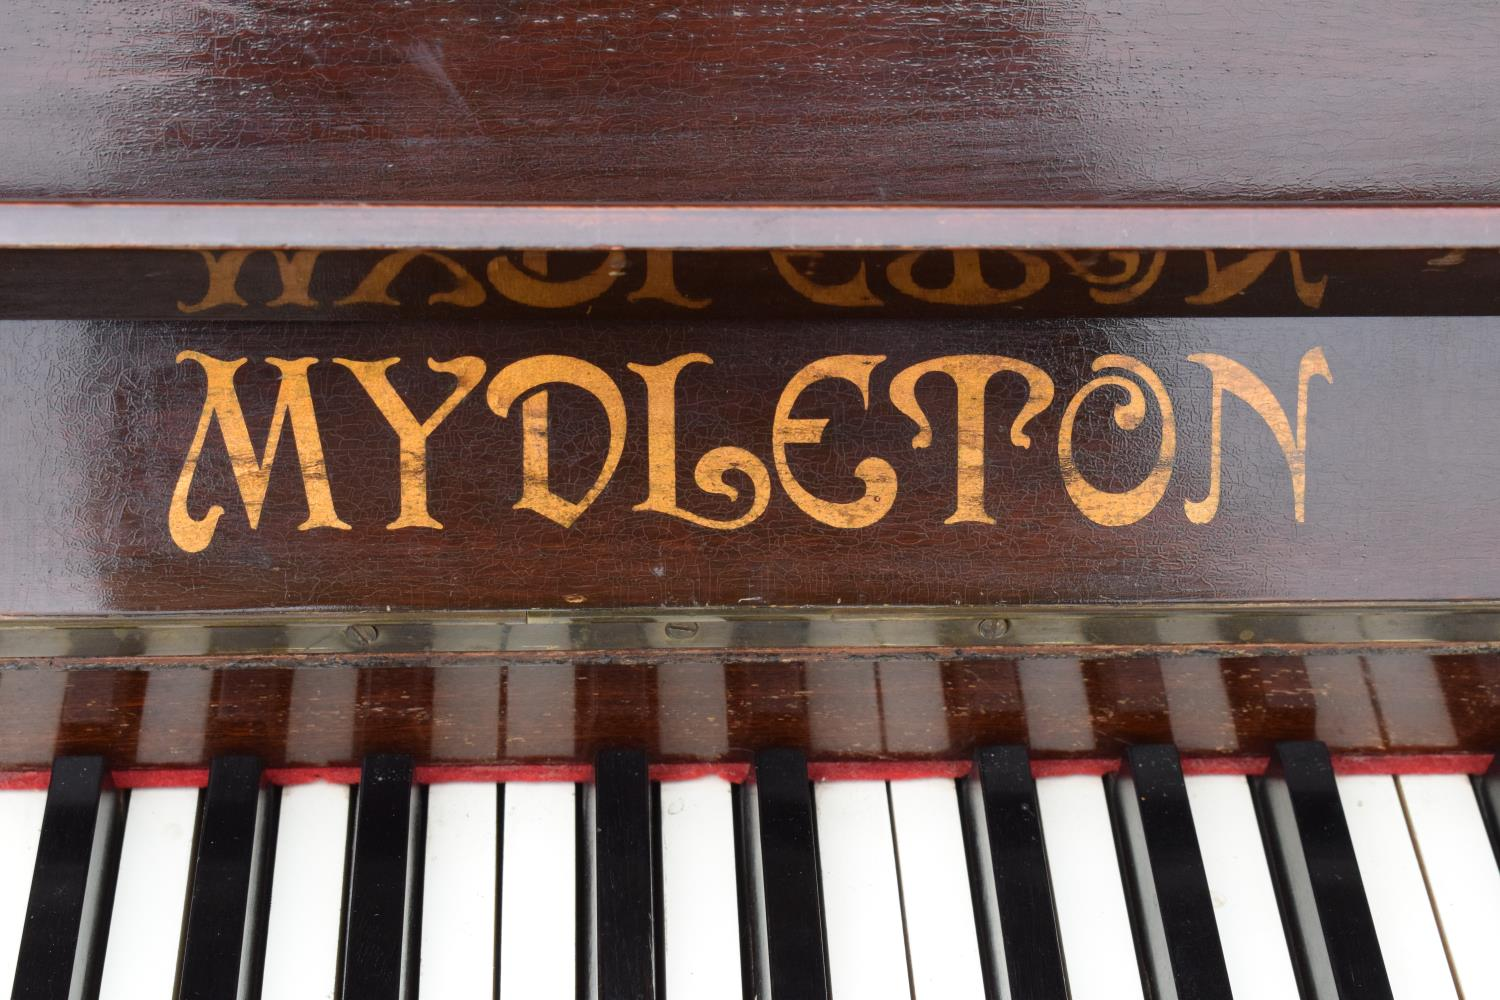 A Breedon and Middleton 'Mydleton' of 42 High Street Crewe upright wooden piano with 85 keys - Image 4 of 11